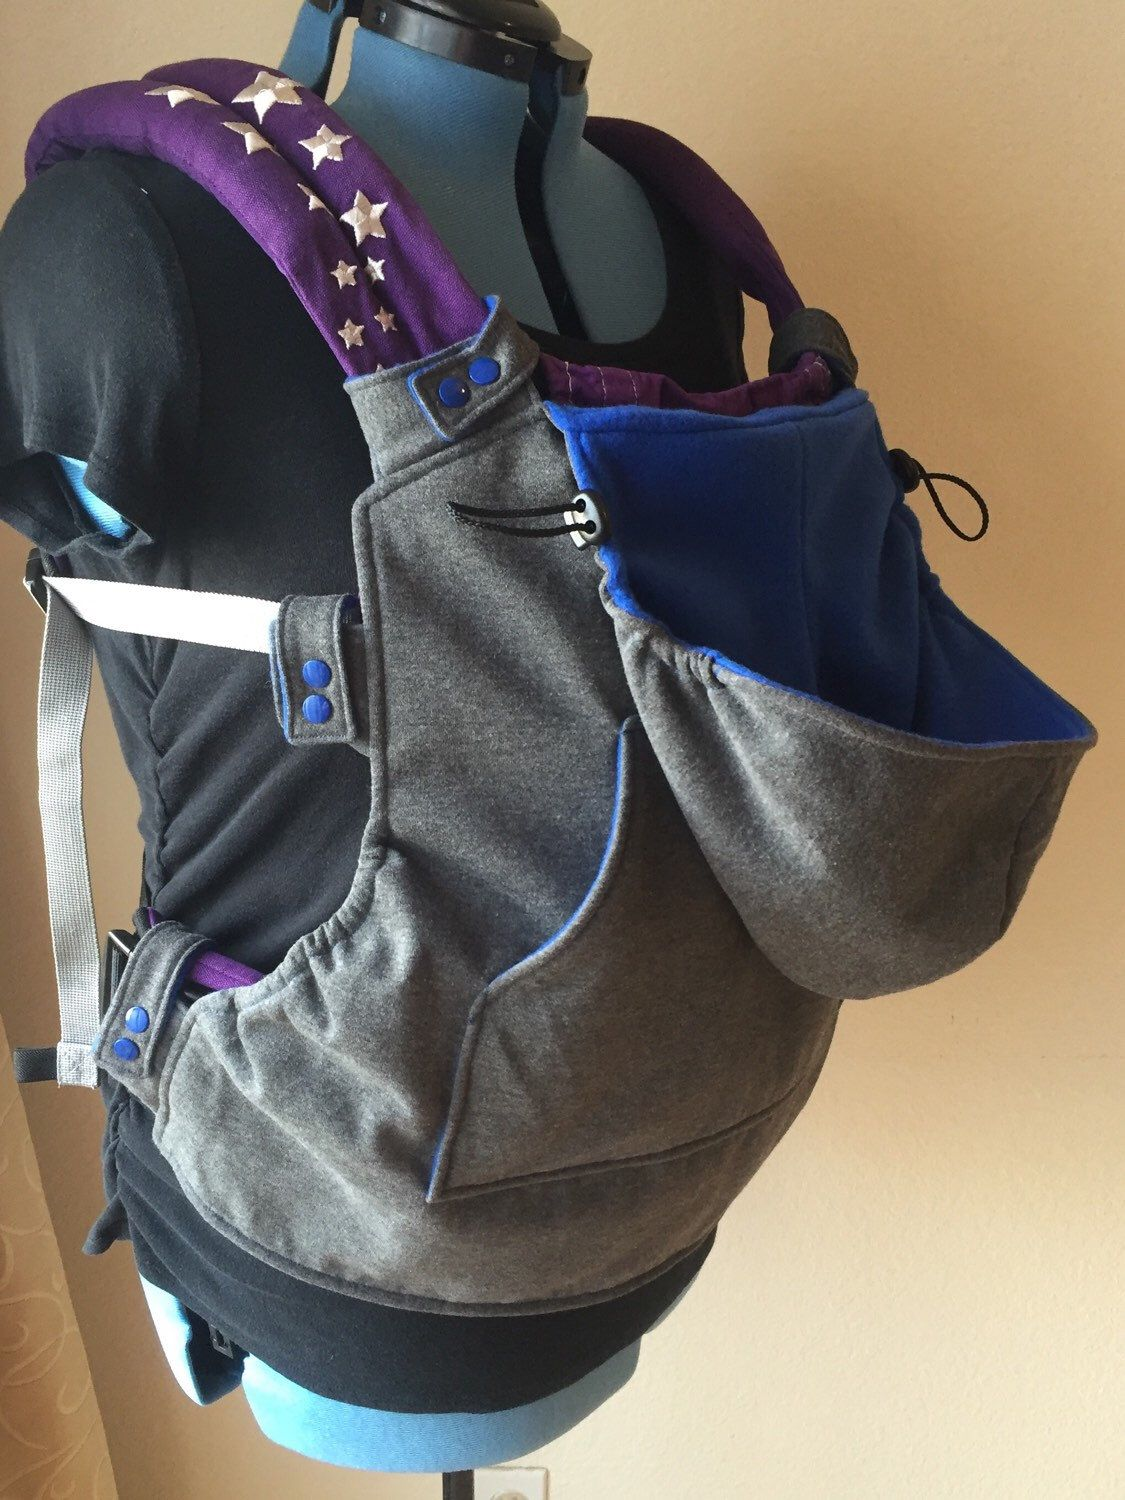 Snap On Hoodie for Soft Structured Baby Carrier Charcoal